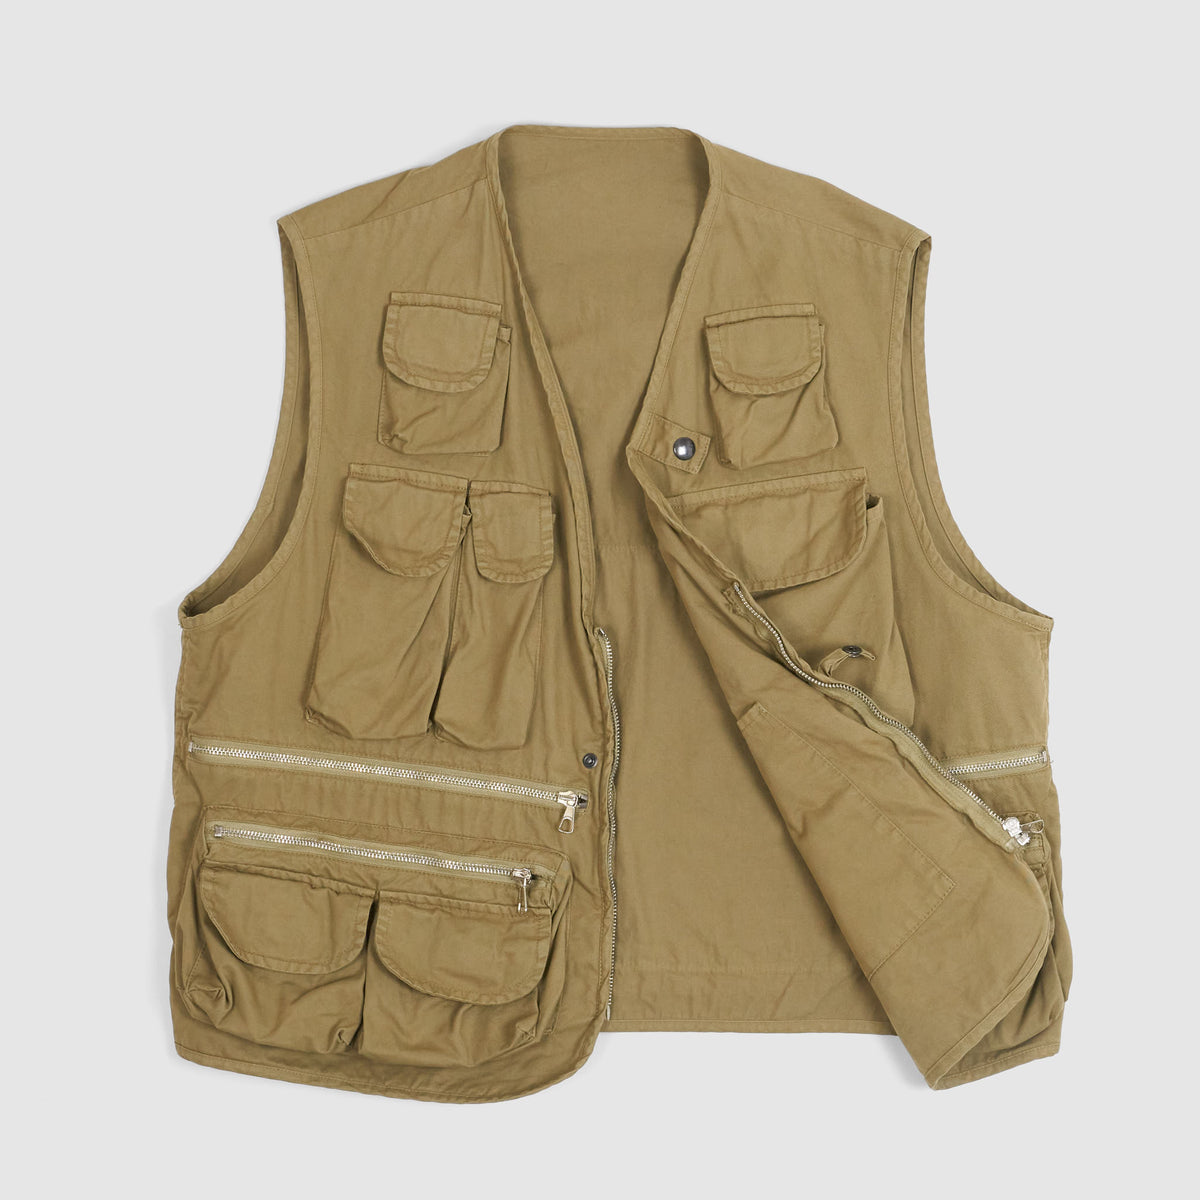 East Harbour Surplus Travel Vest